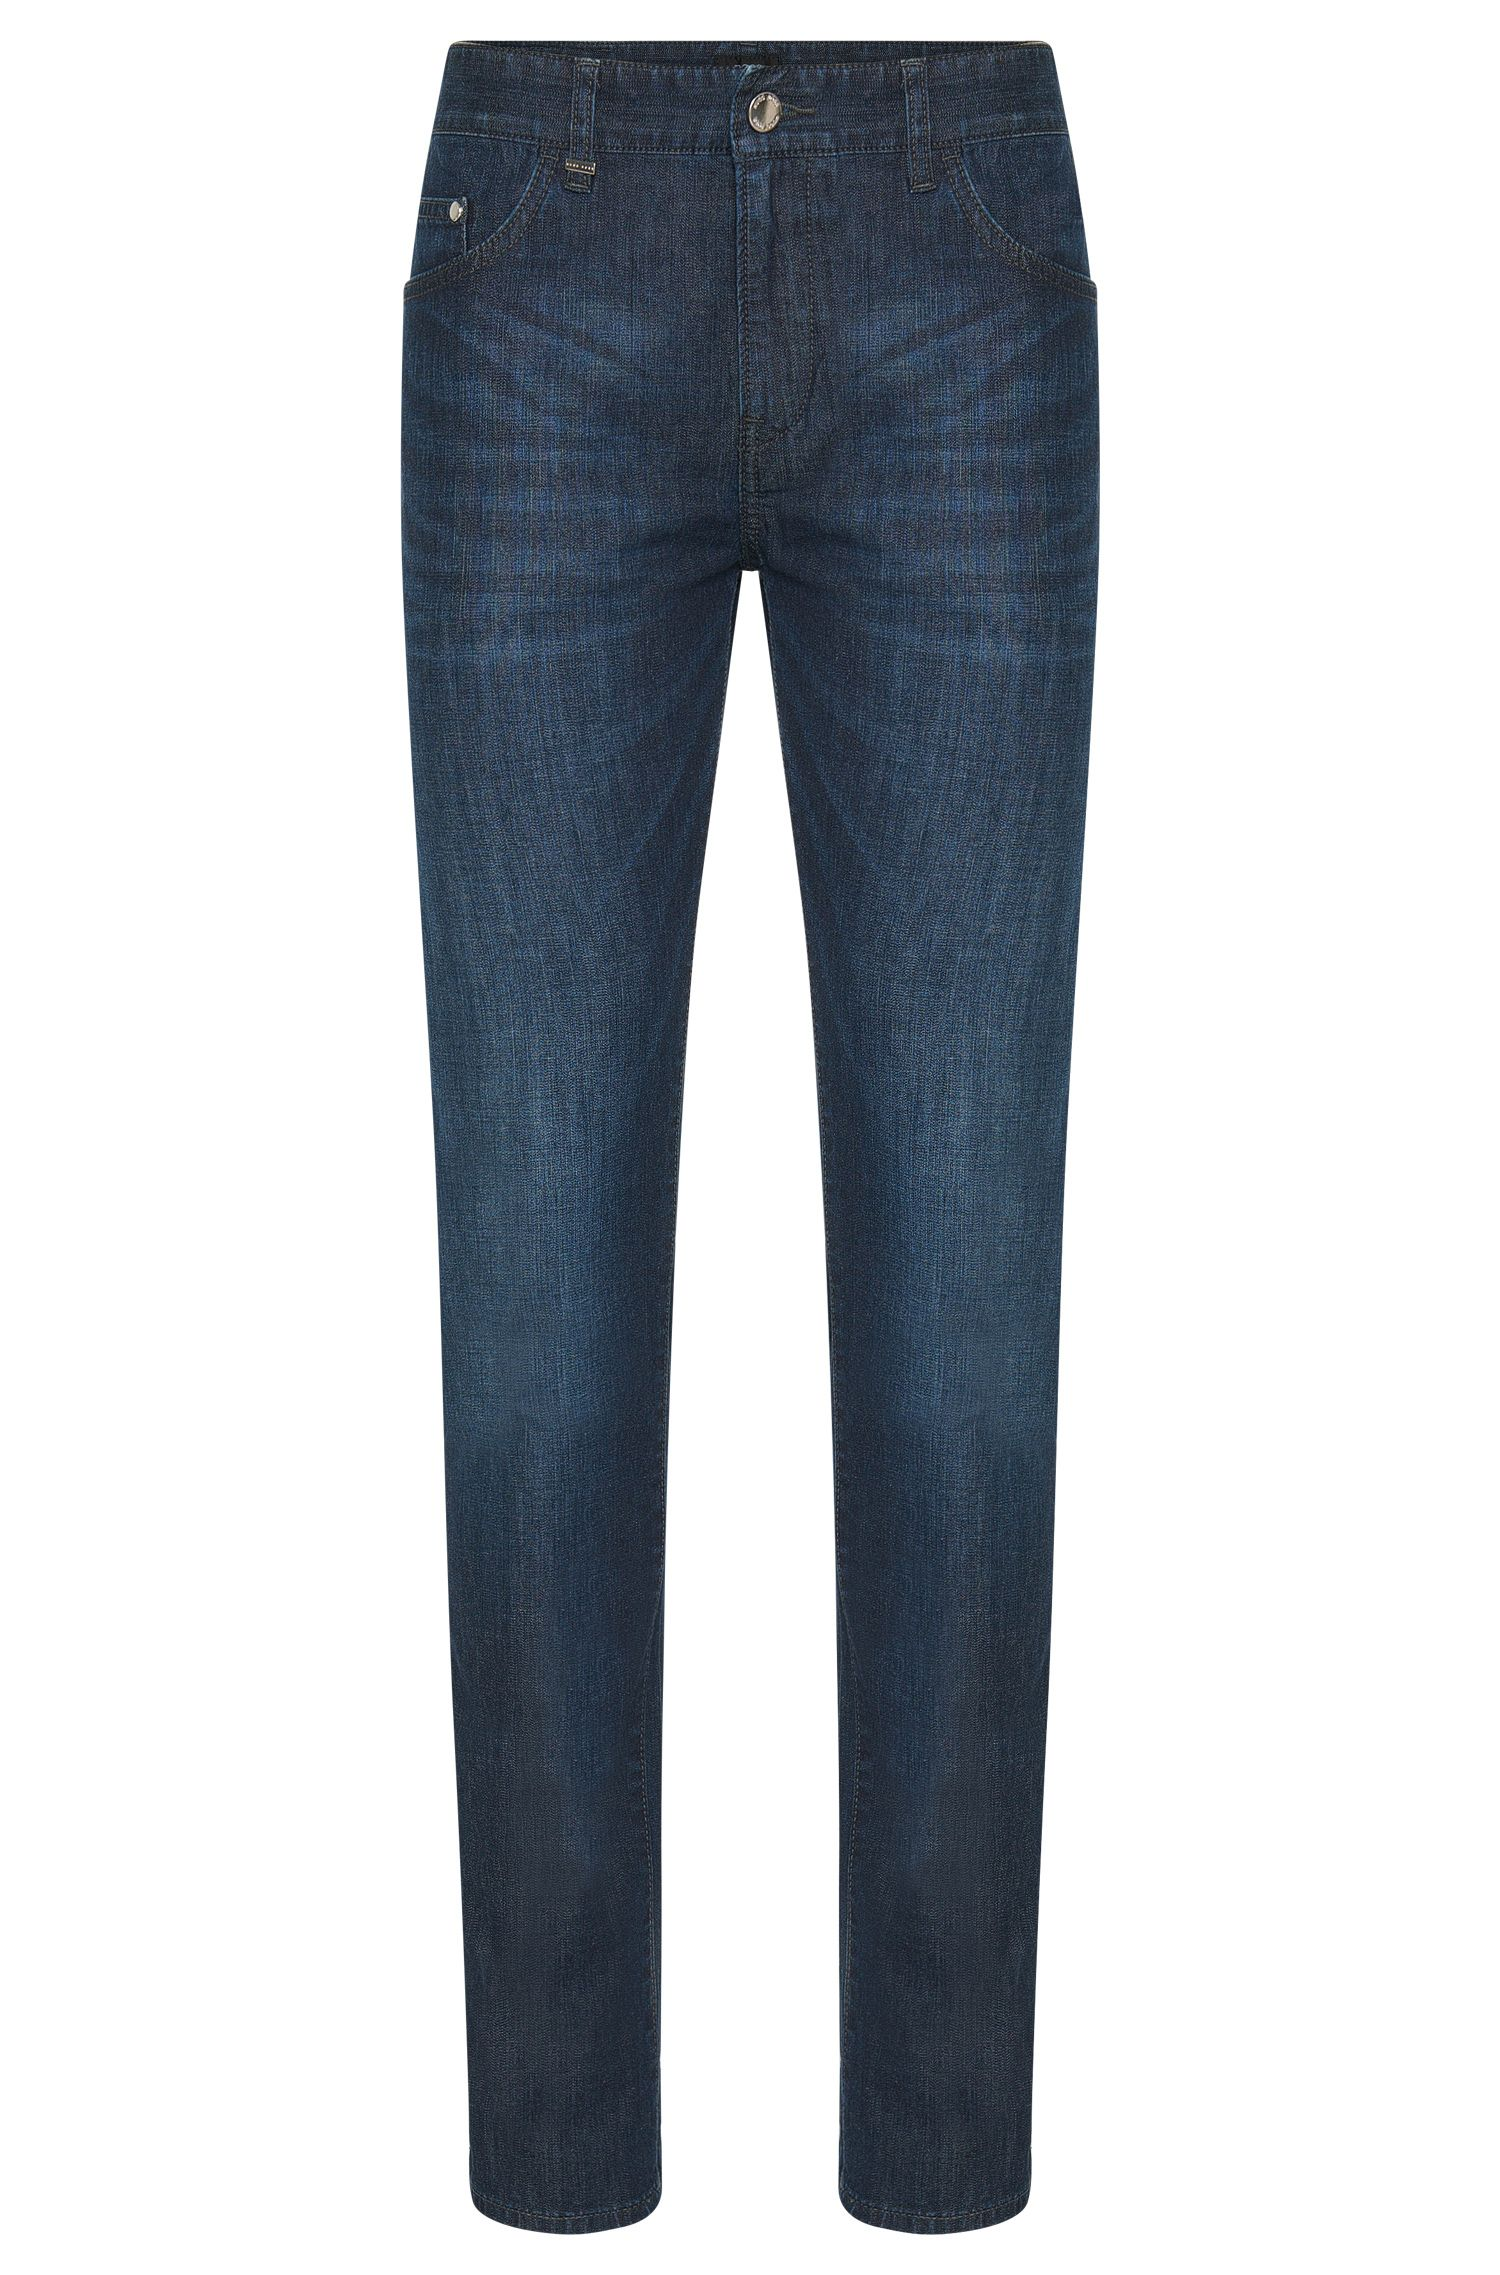 Jeans Slim Fit en coton stretch : « Delaware3-1 »